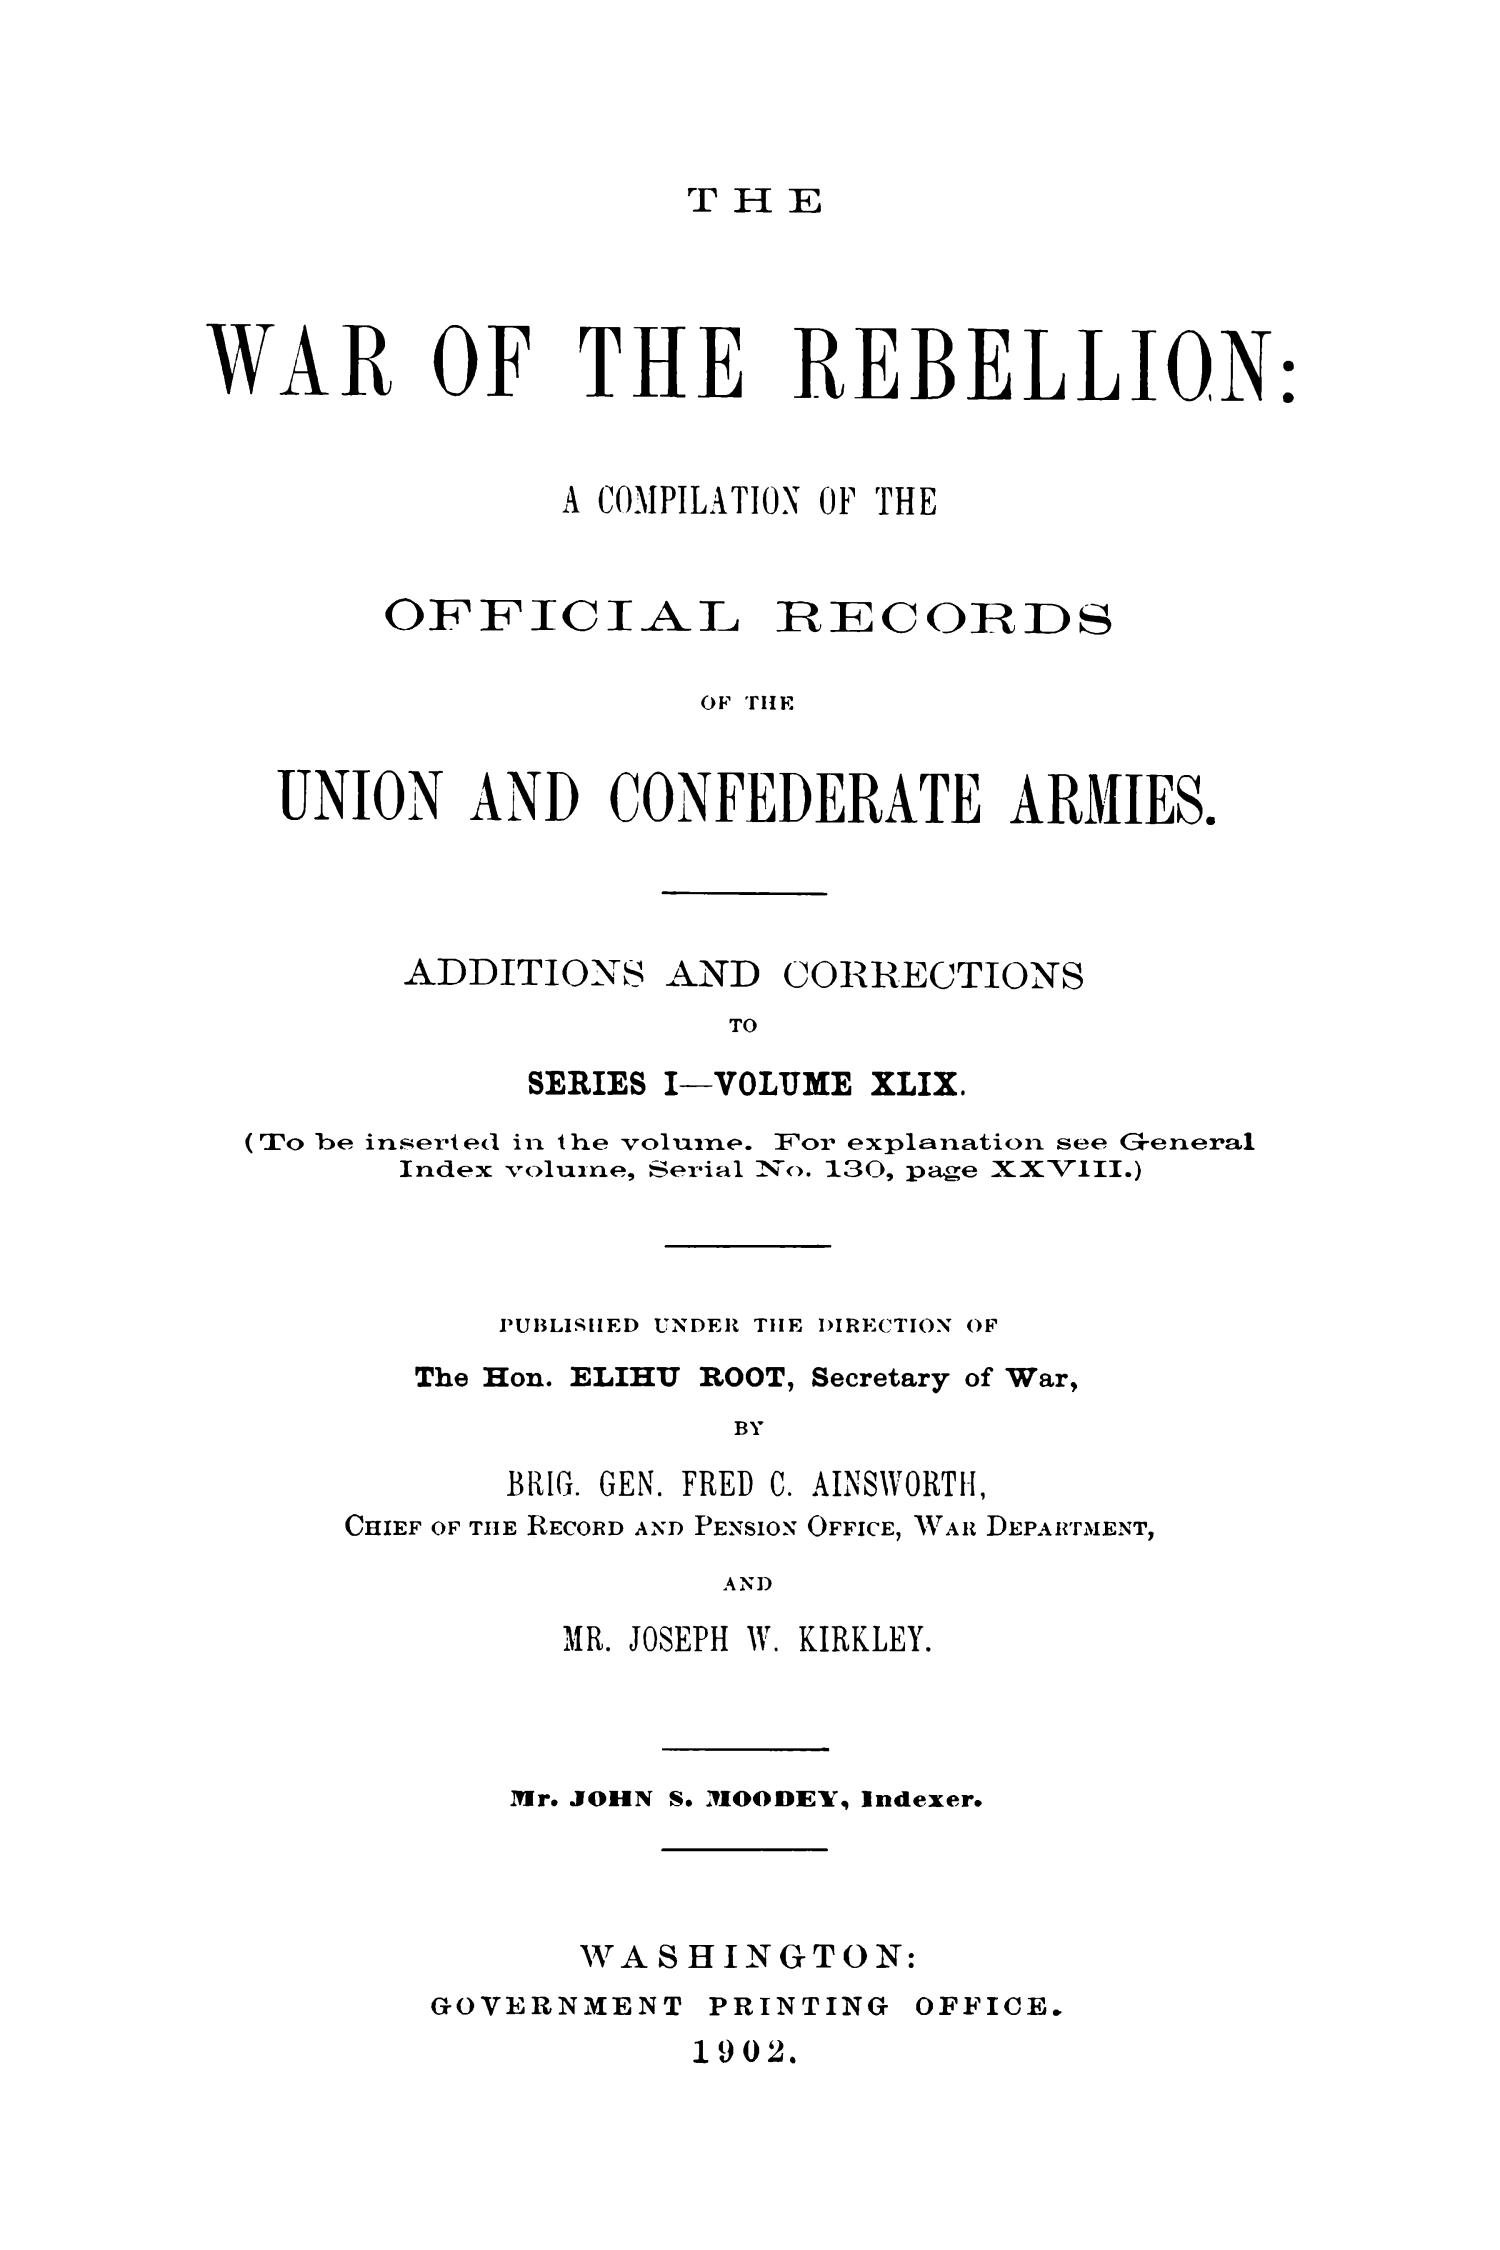 The War of the Rebellion: A Compilation of the Official Records of the Union And Confederate Armies. Additions and Corrections to Series 1, Volume 49.                                                                                                      1